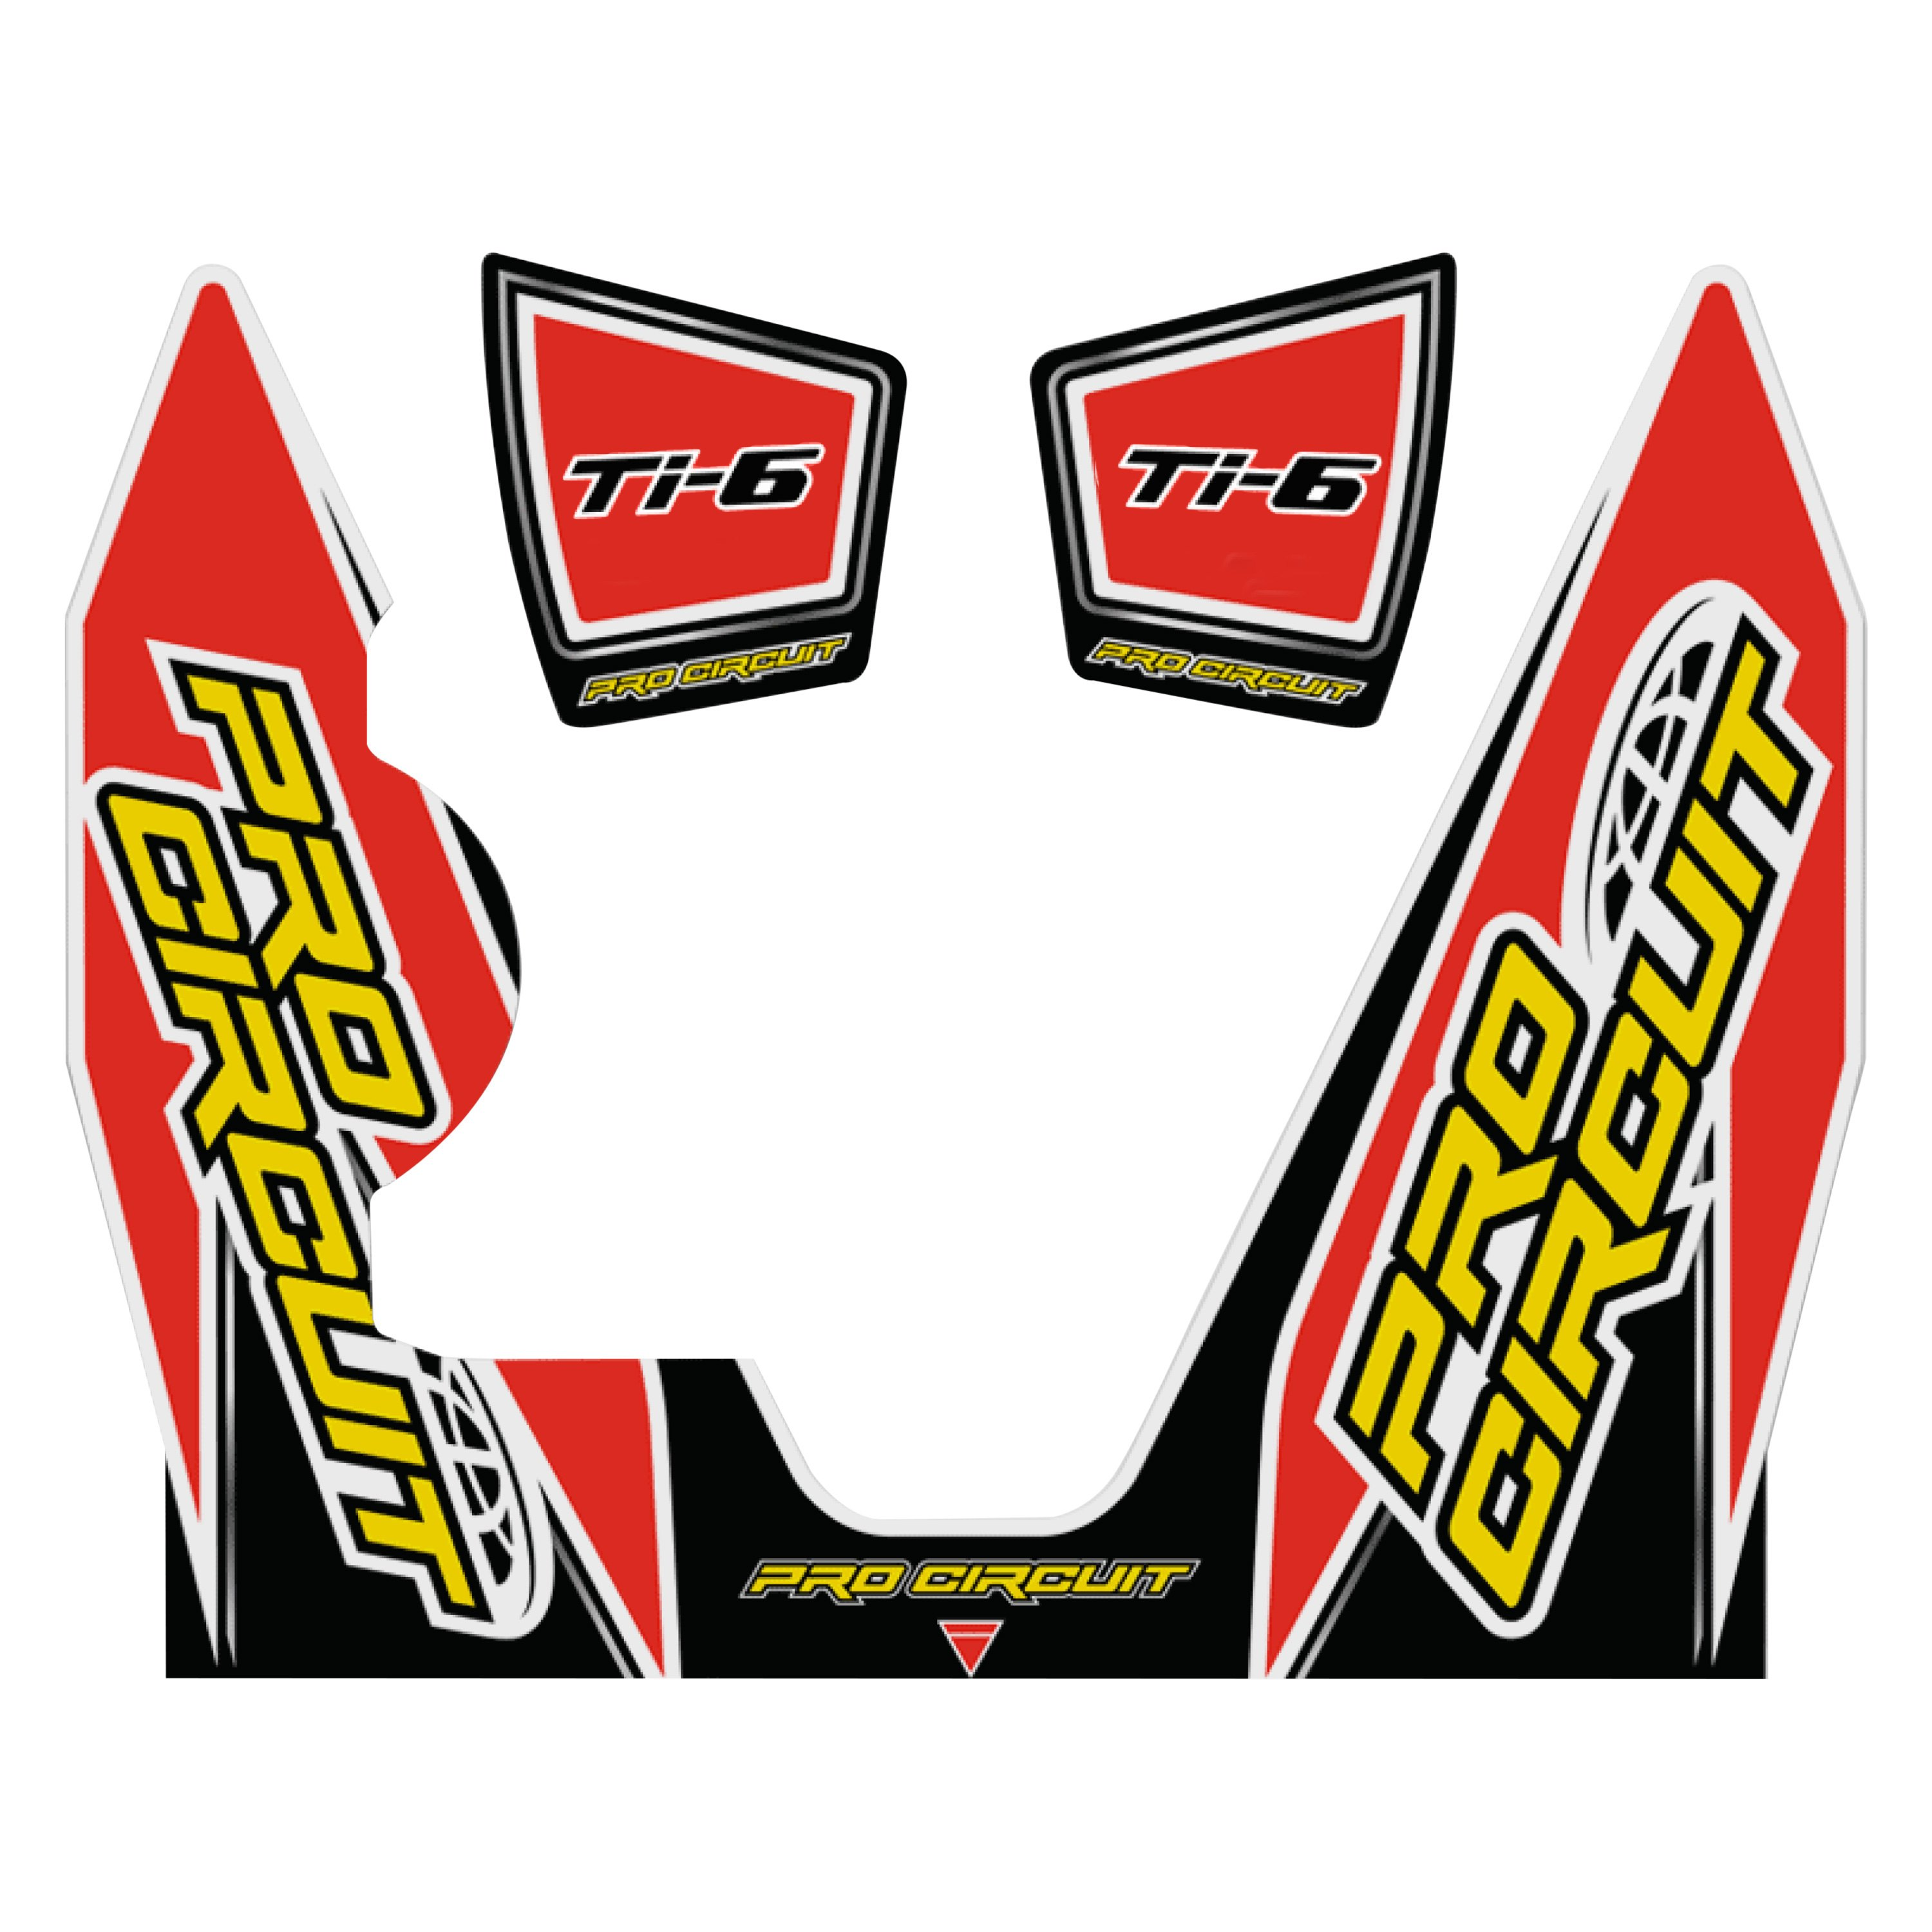 Pro Circuit DC14TI6-YZ450F Replacement Muffler Stickers Ti-6 YZ450F Decals